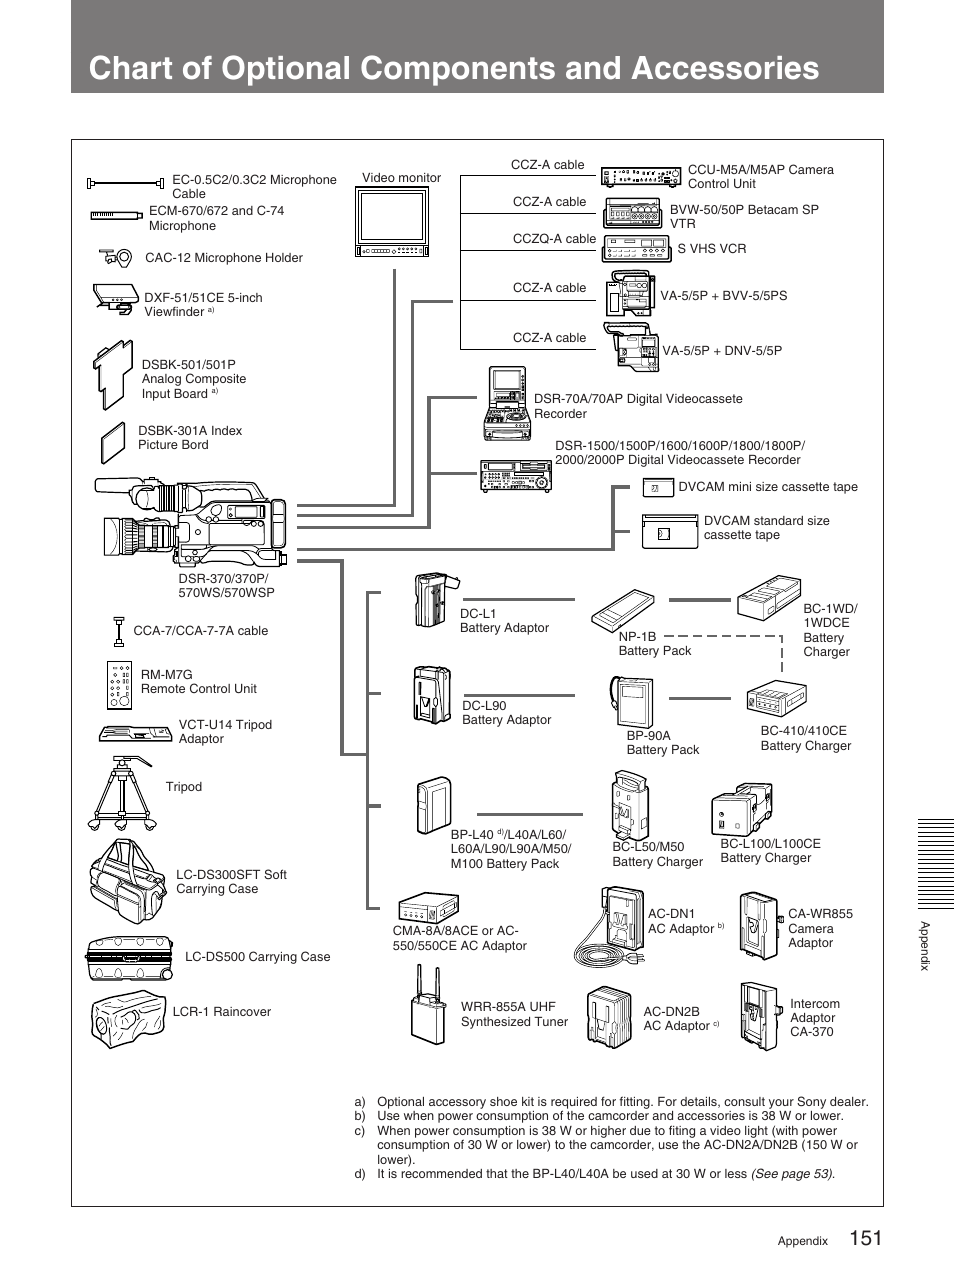 Chart Of Optional Components And Accessories Sony 570wspl User Ccu Intercom Wiring Harness Manual Page 151 160